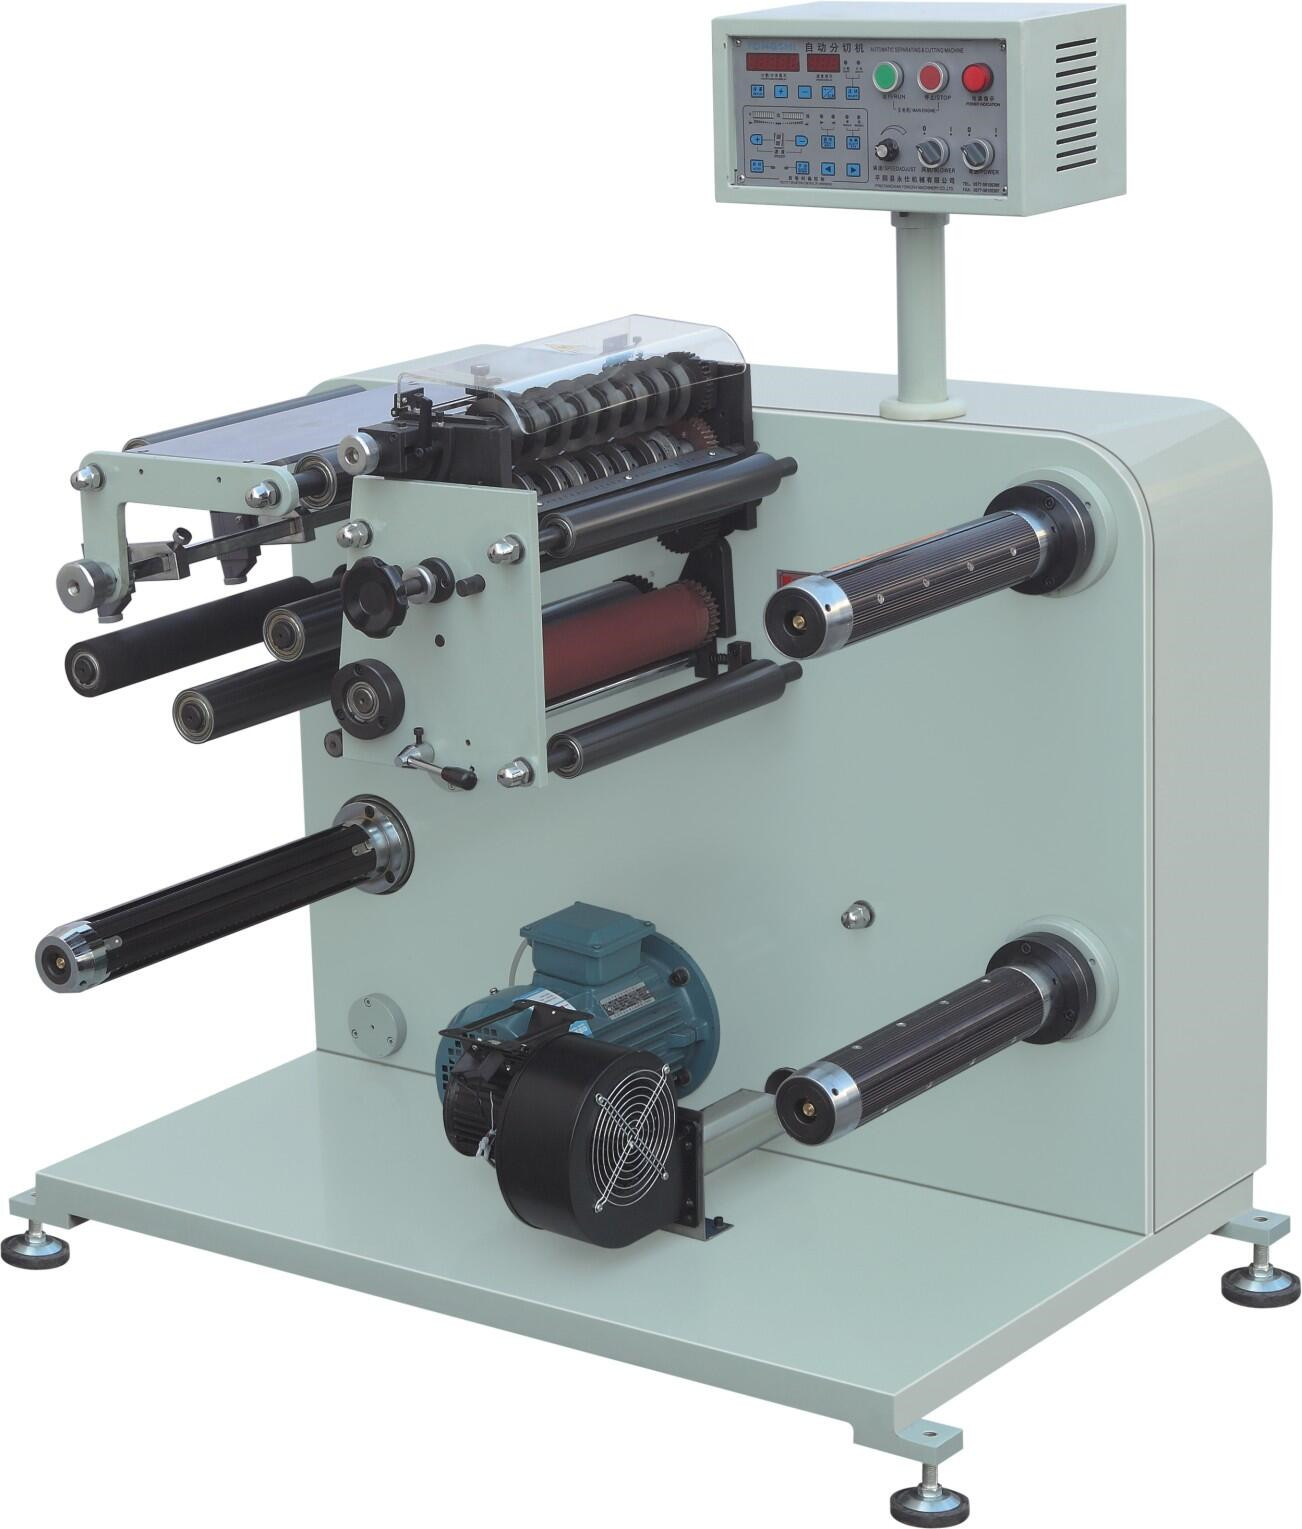 Slitting machine manufacturers share operating steps